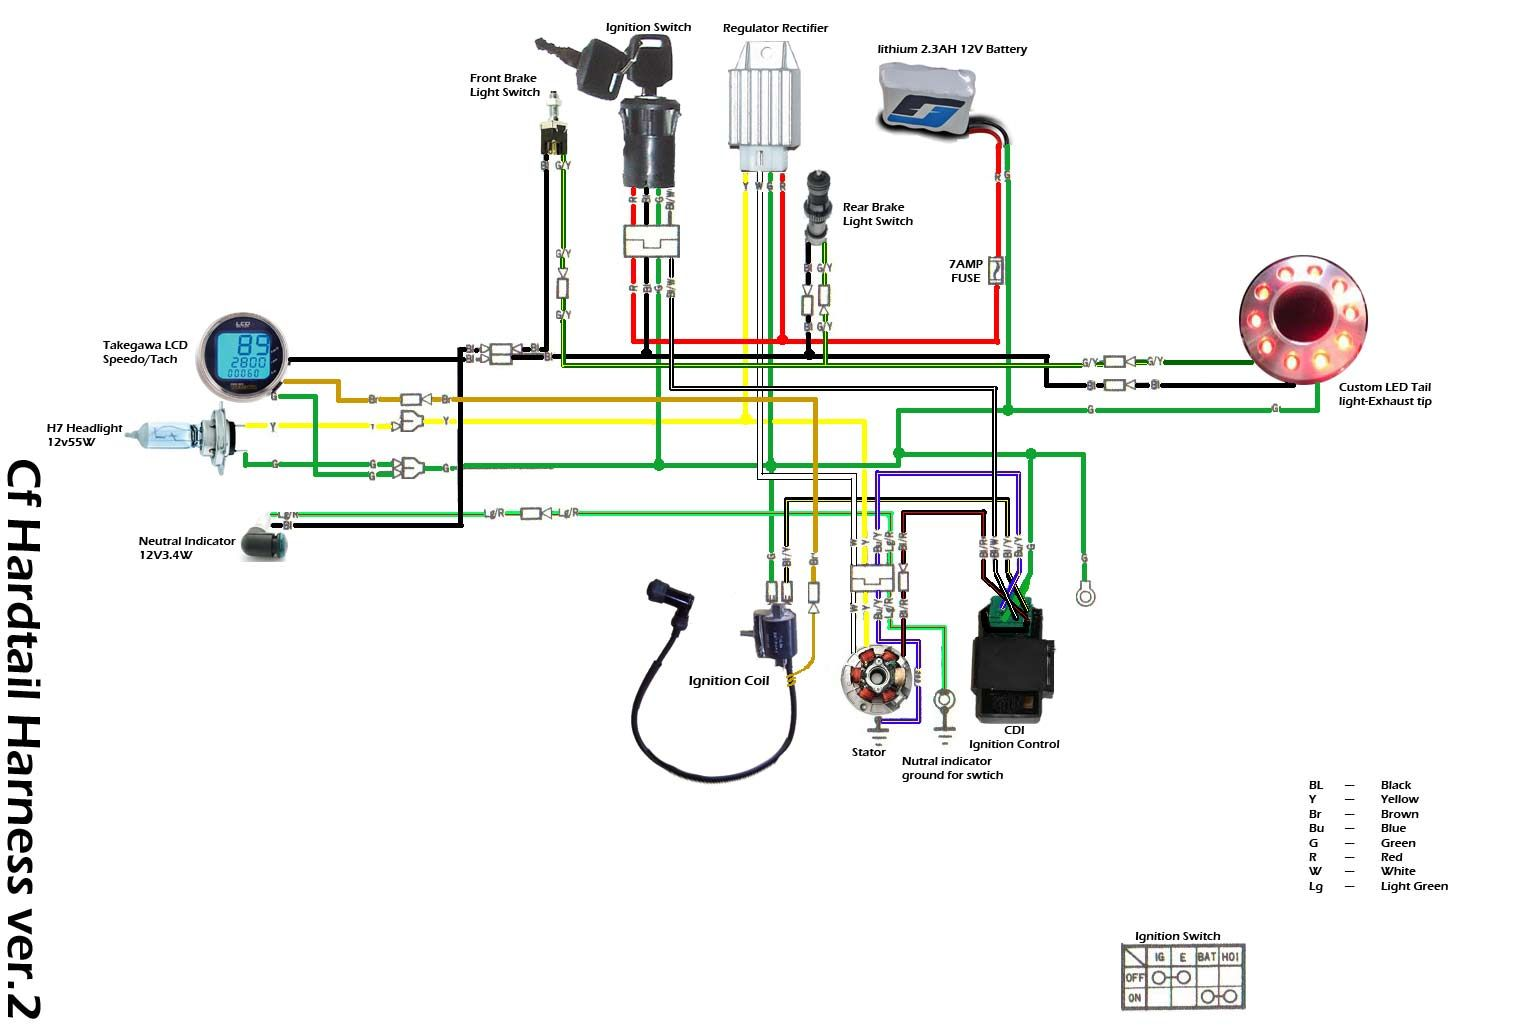 Lifan Pit Bike Wiring Diagram | Wiring Diagram